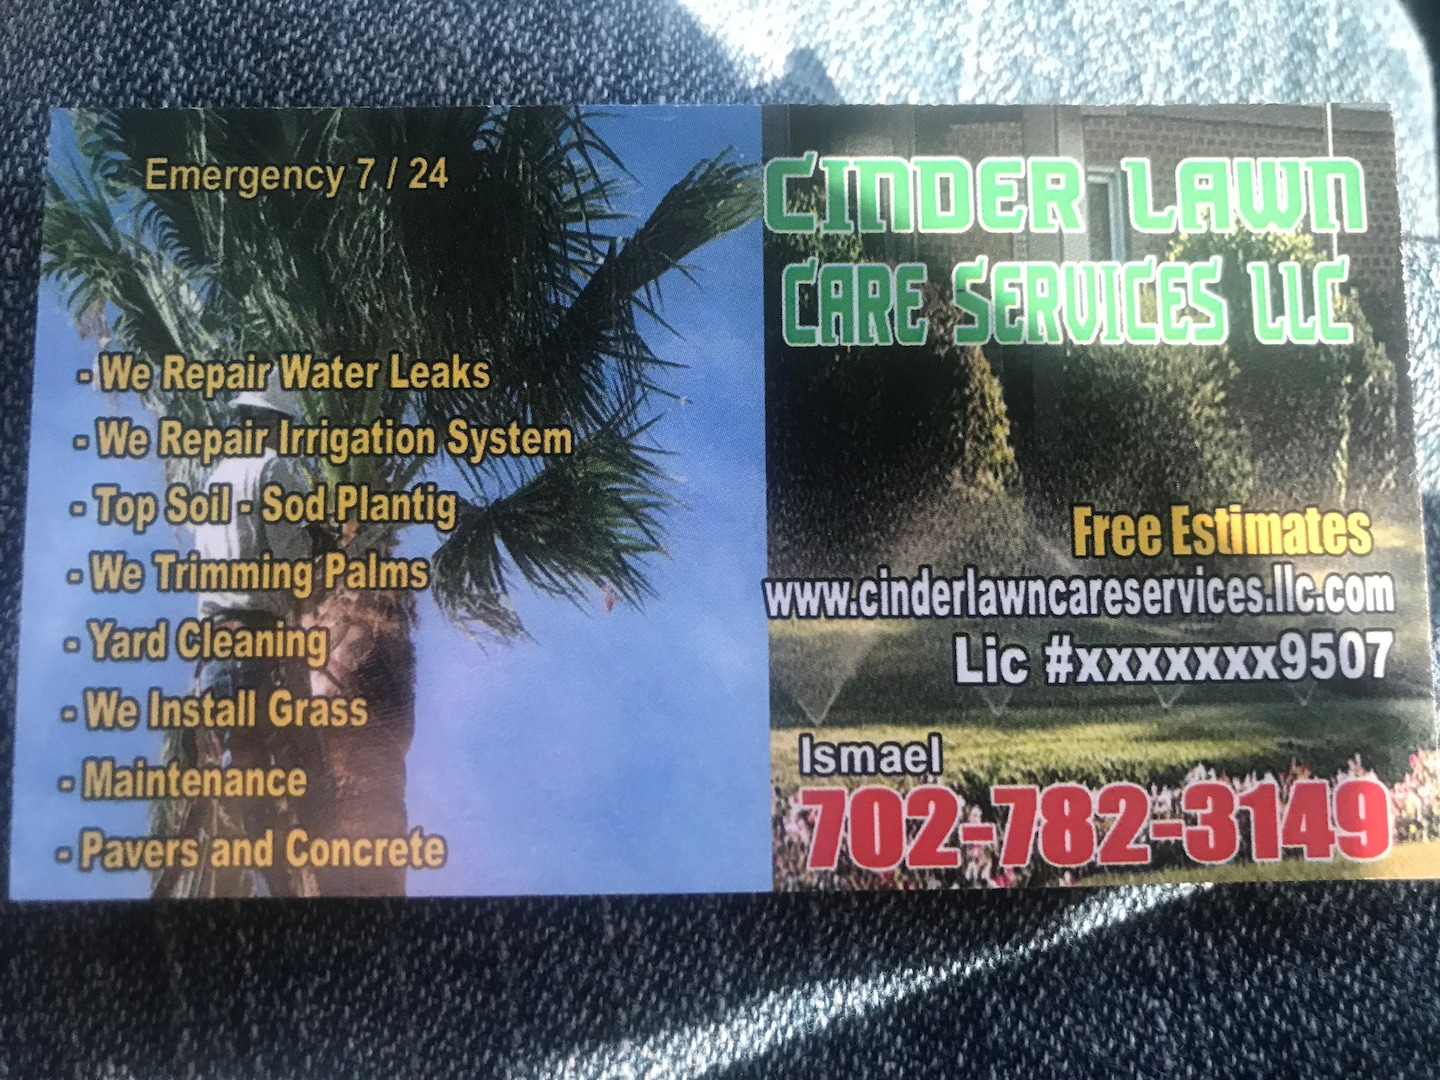 Cinder lawn care services